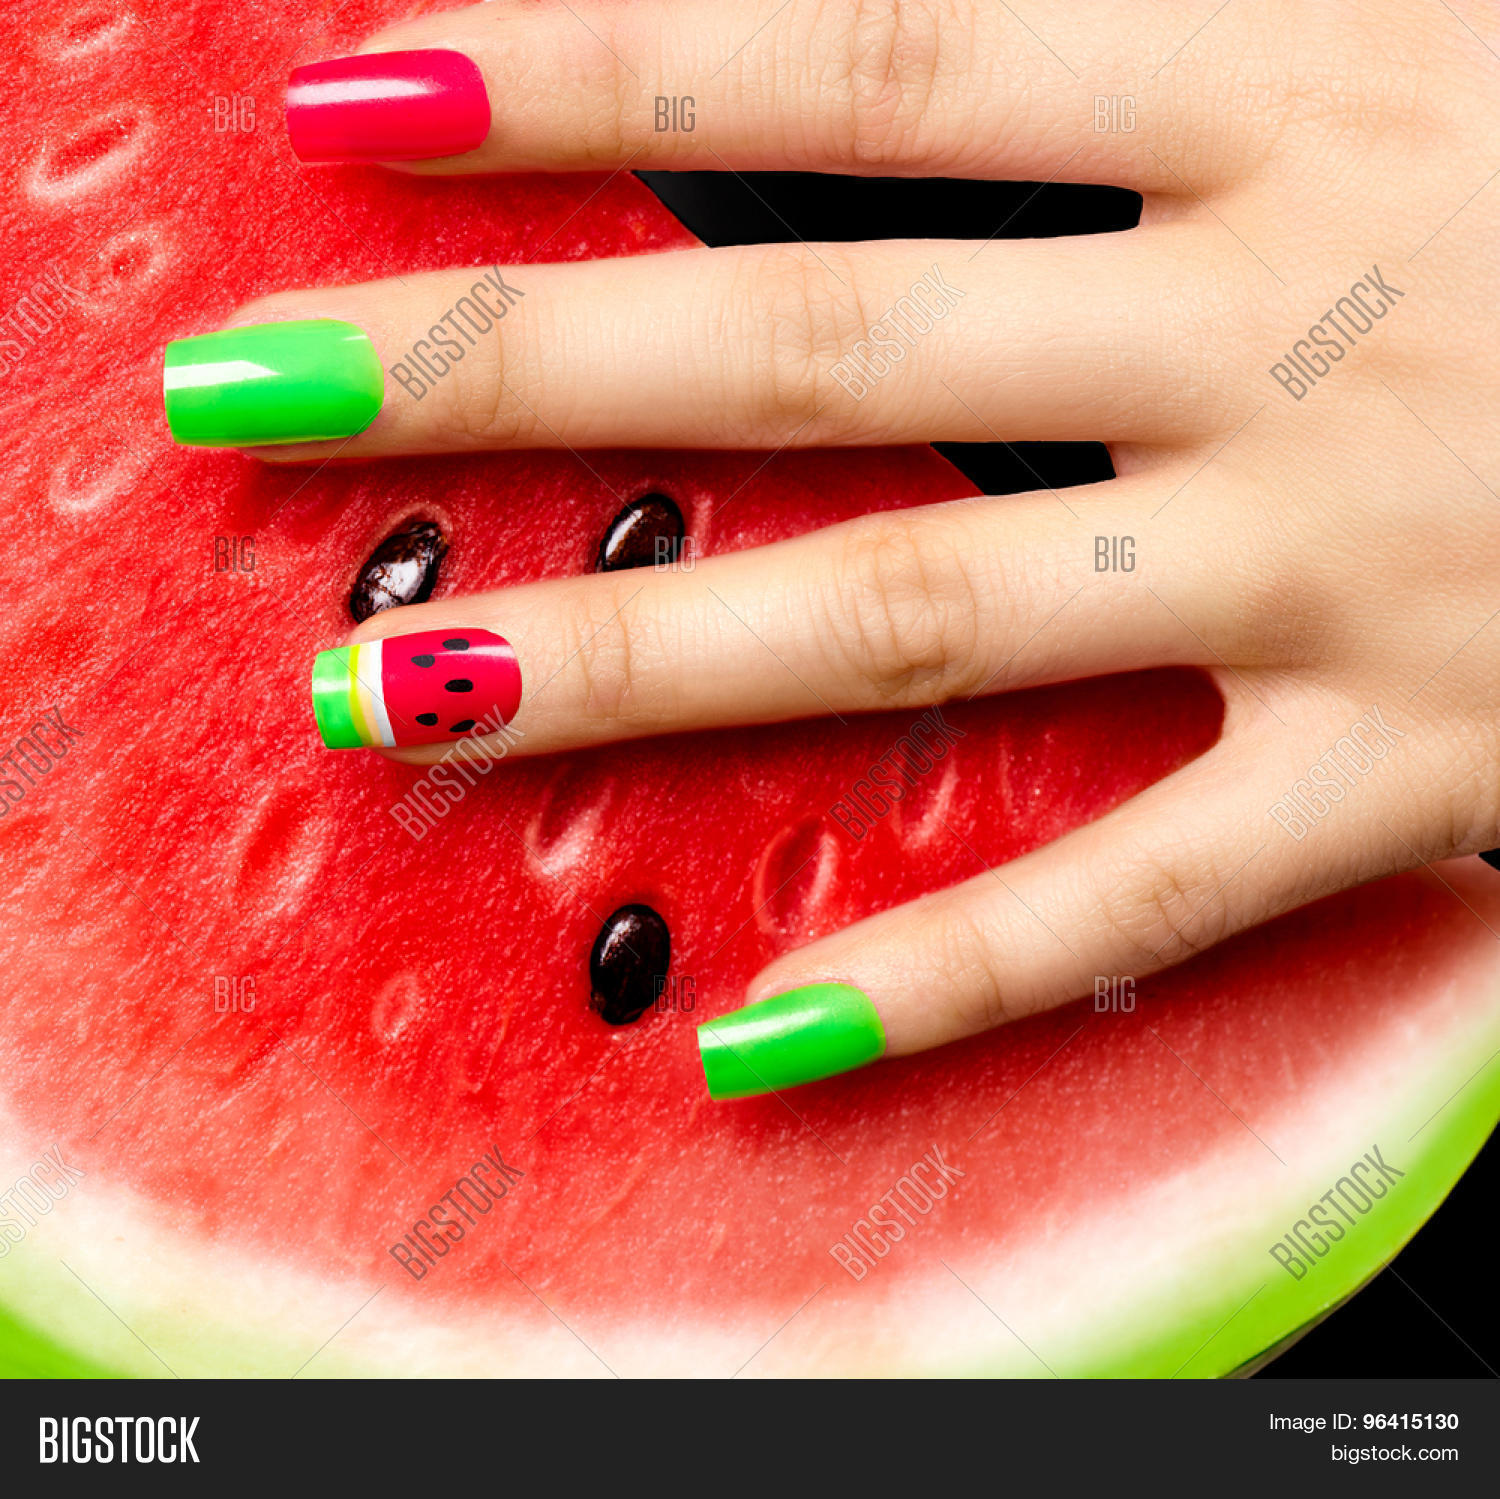 Free Manicure Beauty Hands Makeover: Nail Art Manicure. Watermelon Style Image & Photo